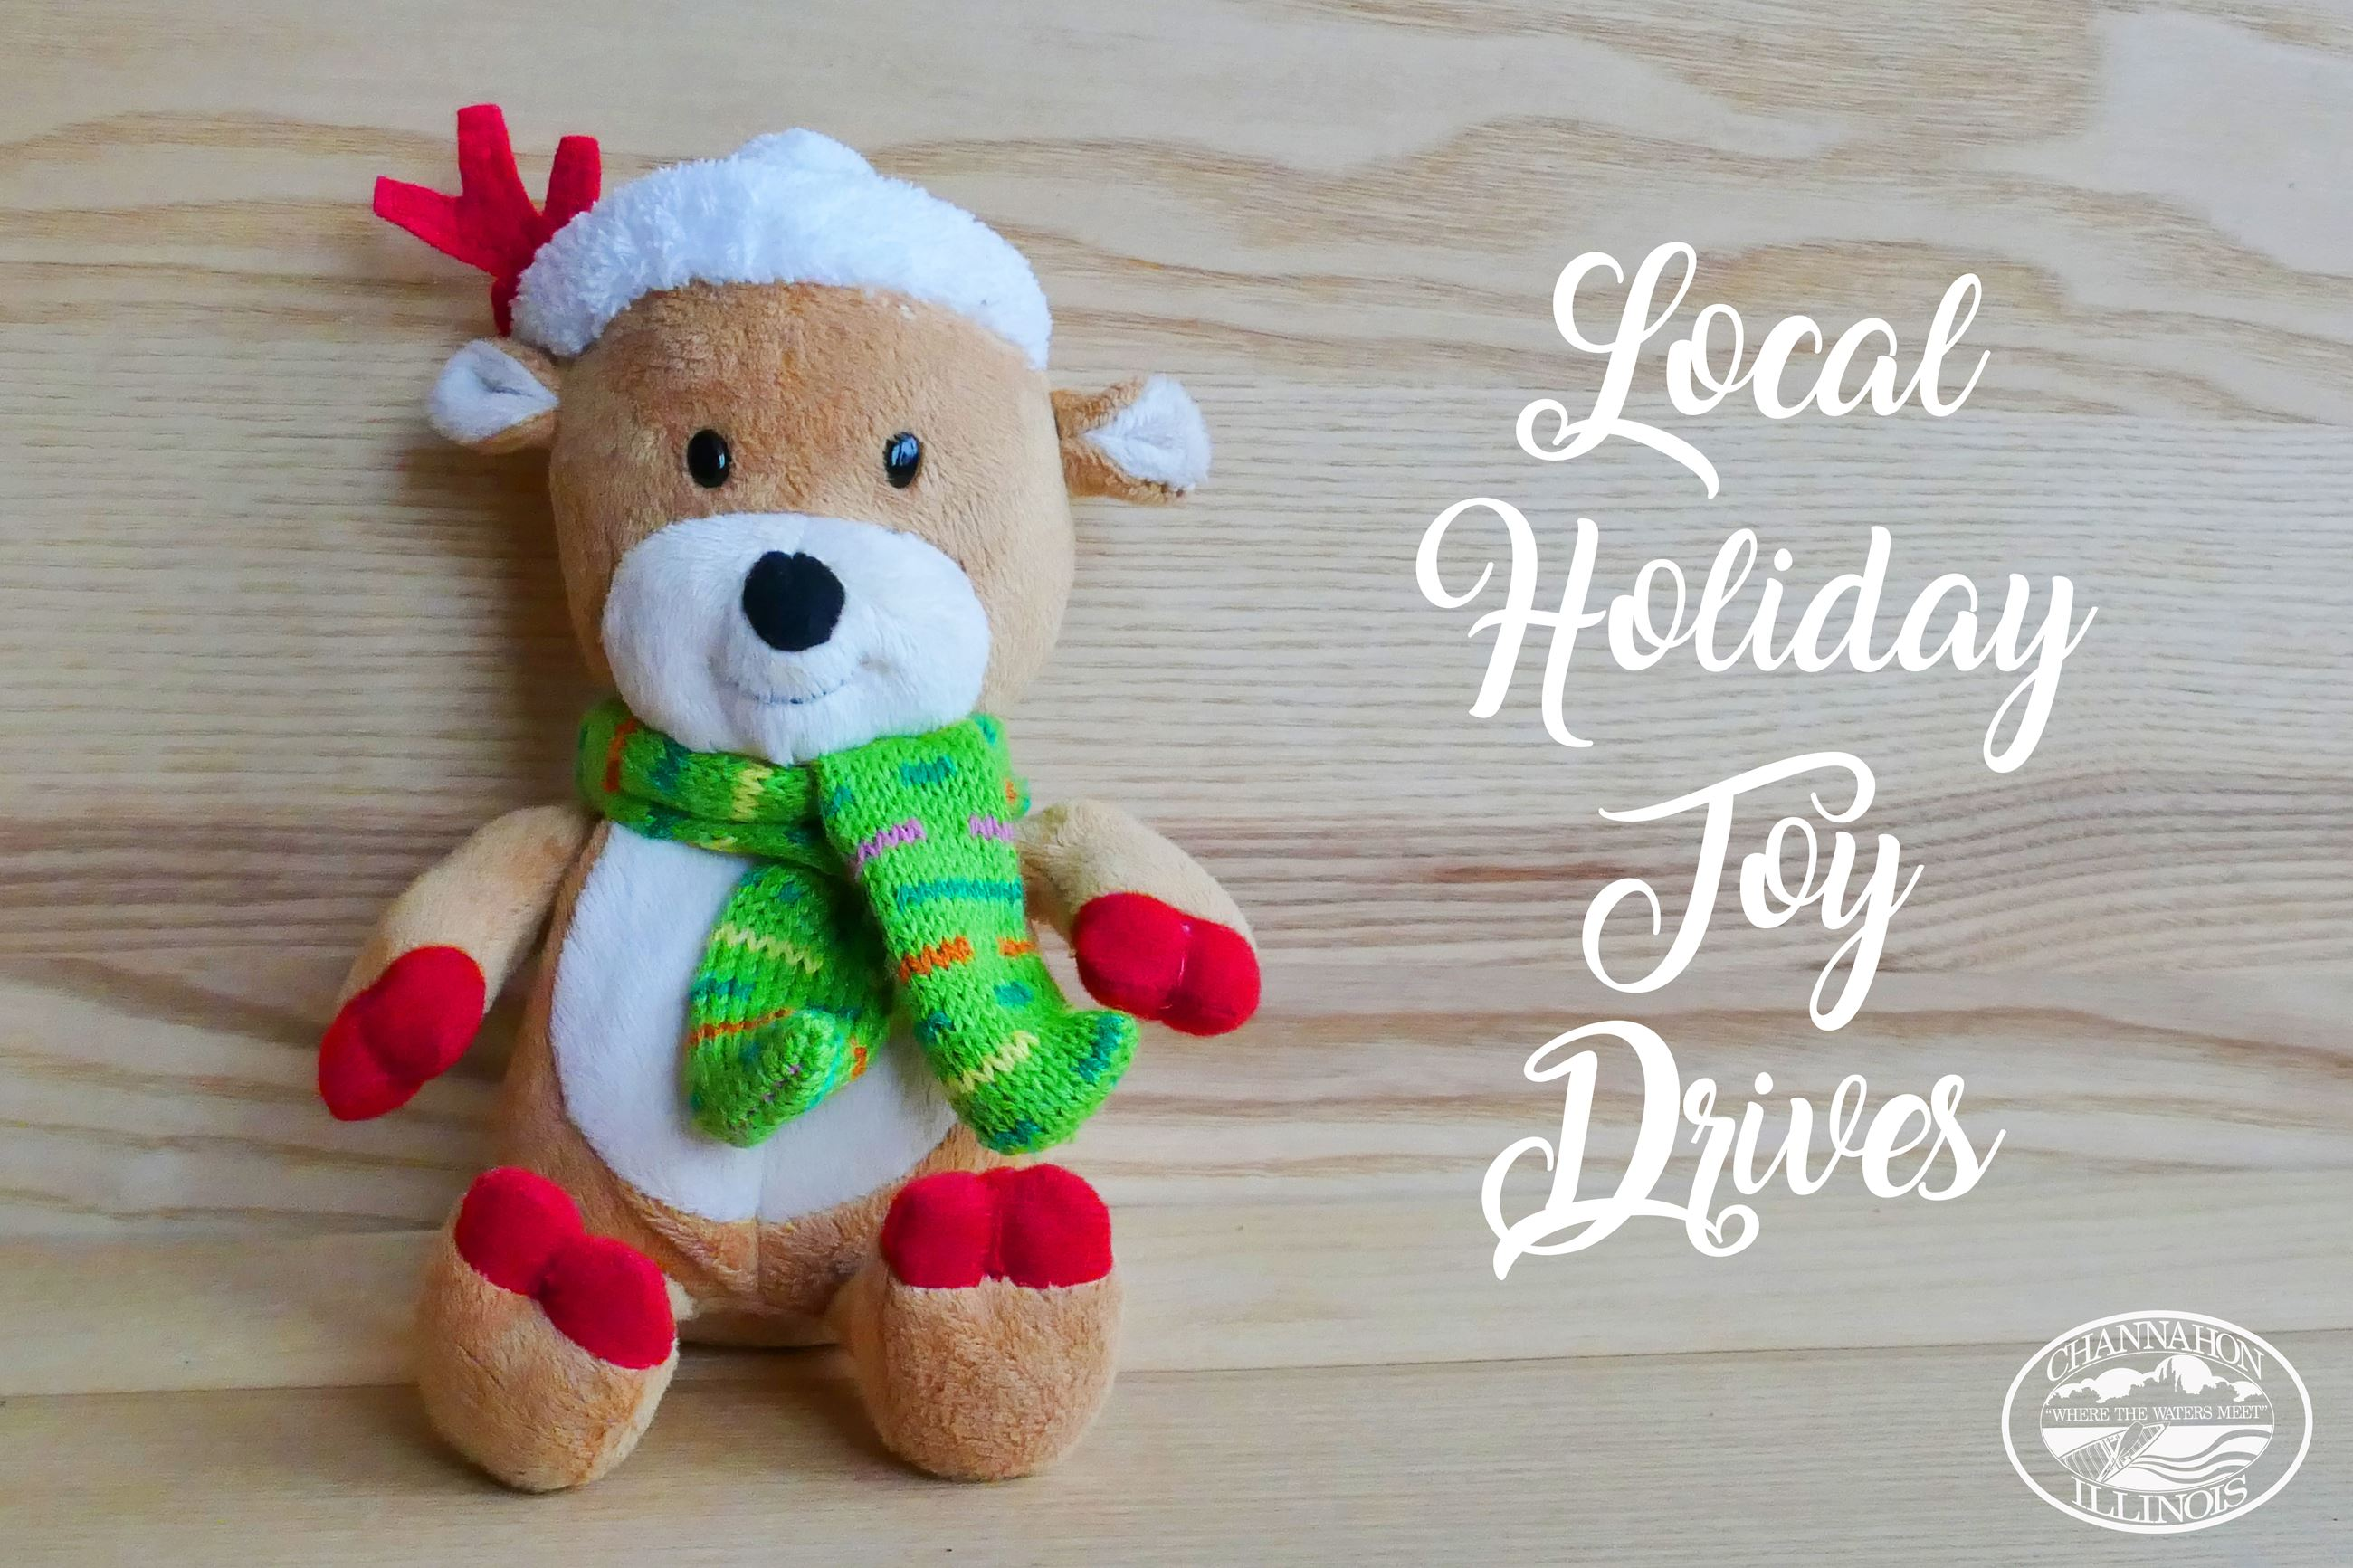 Image of stuffed bear with words: Local Holiday Toy Drives